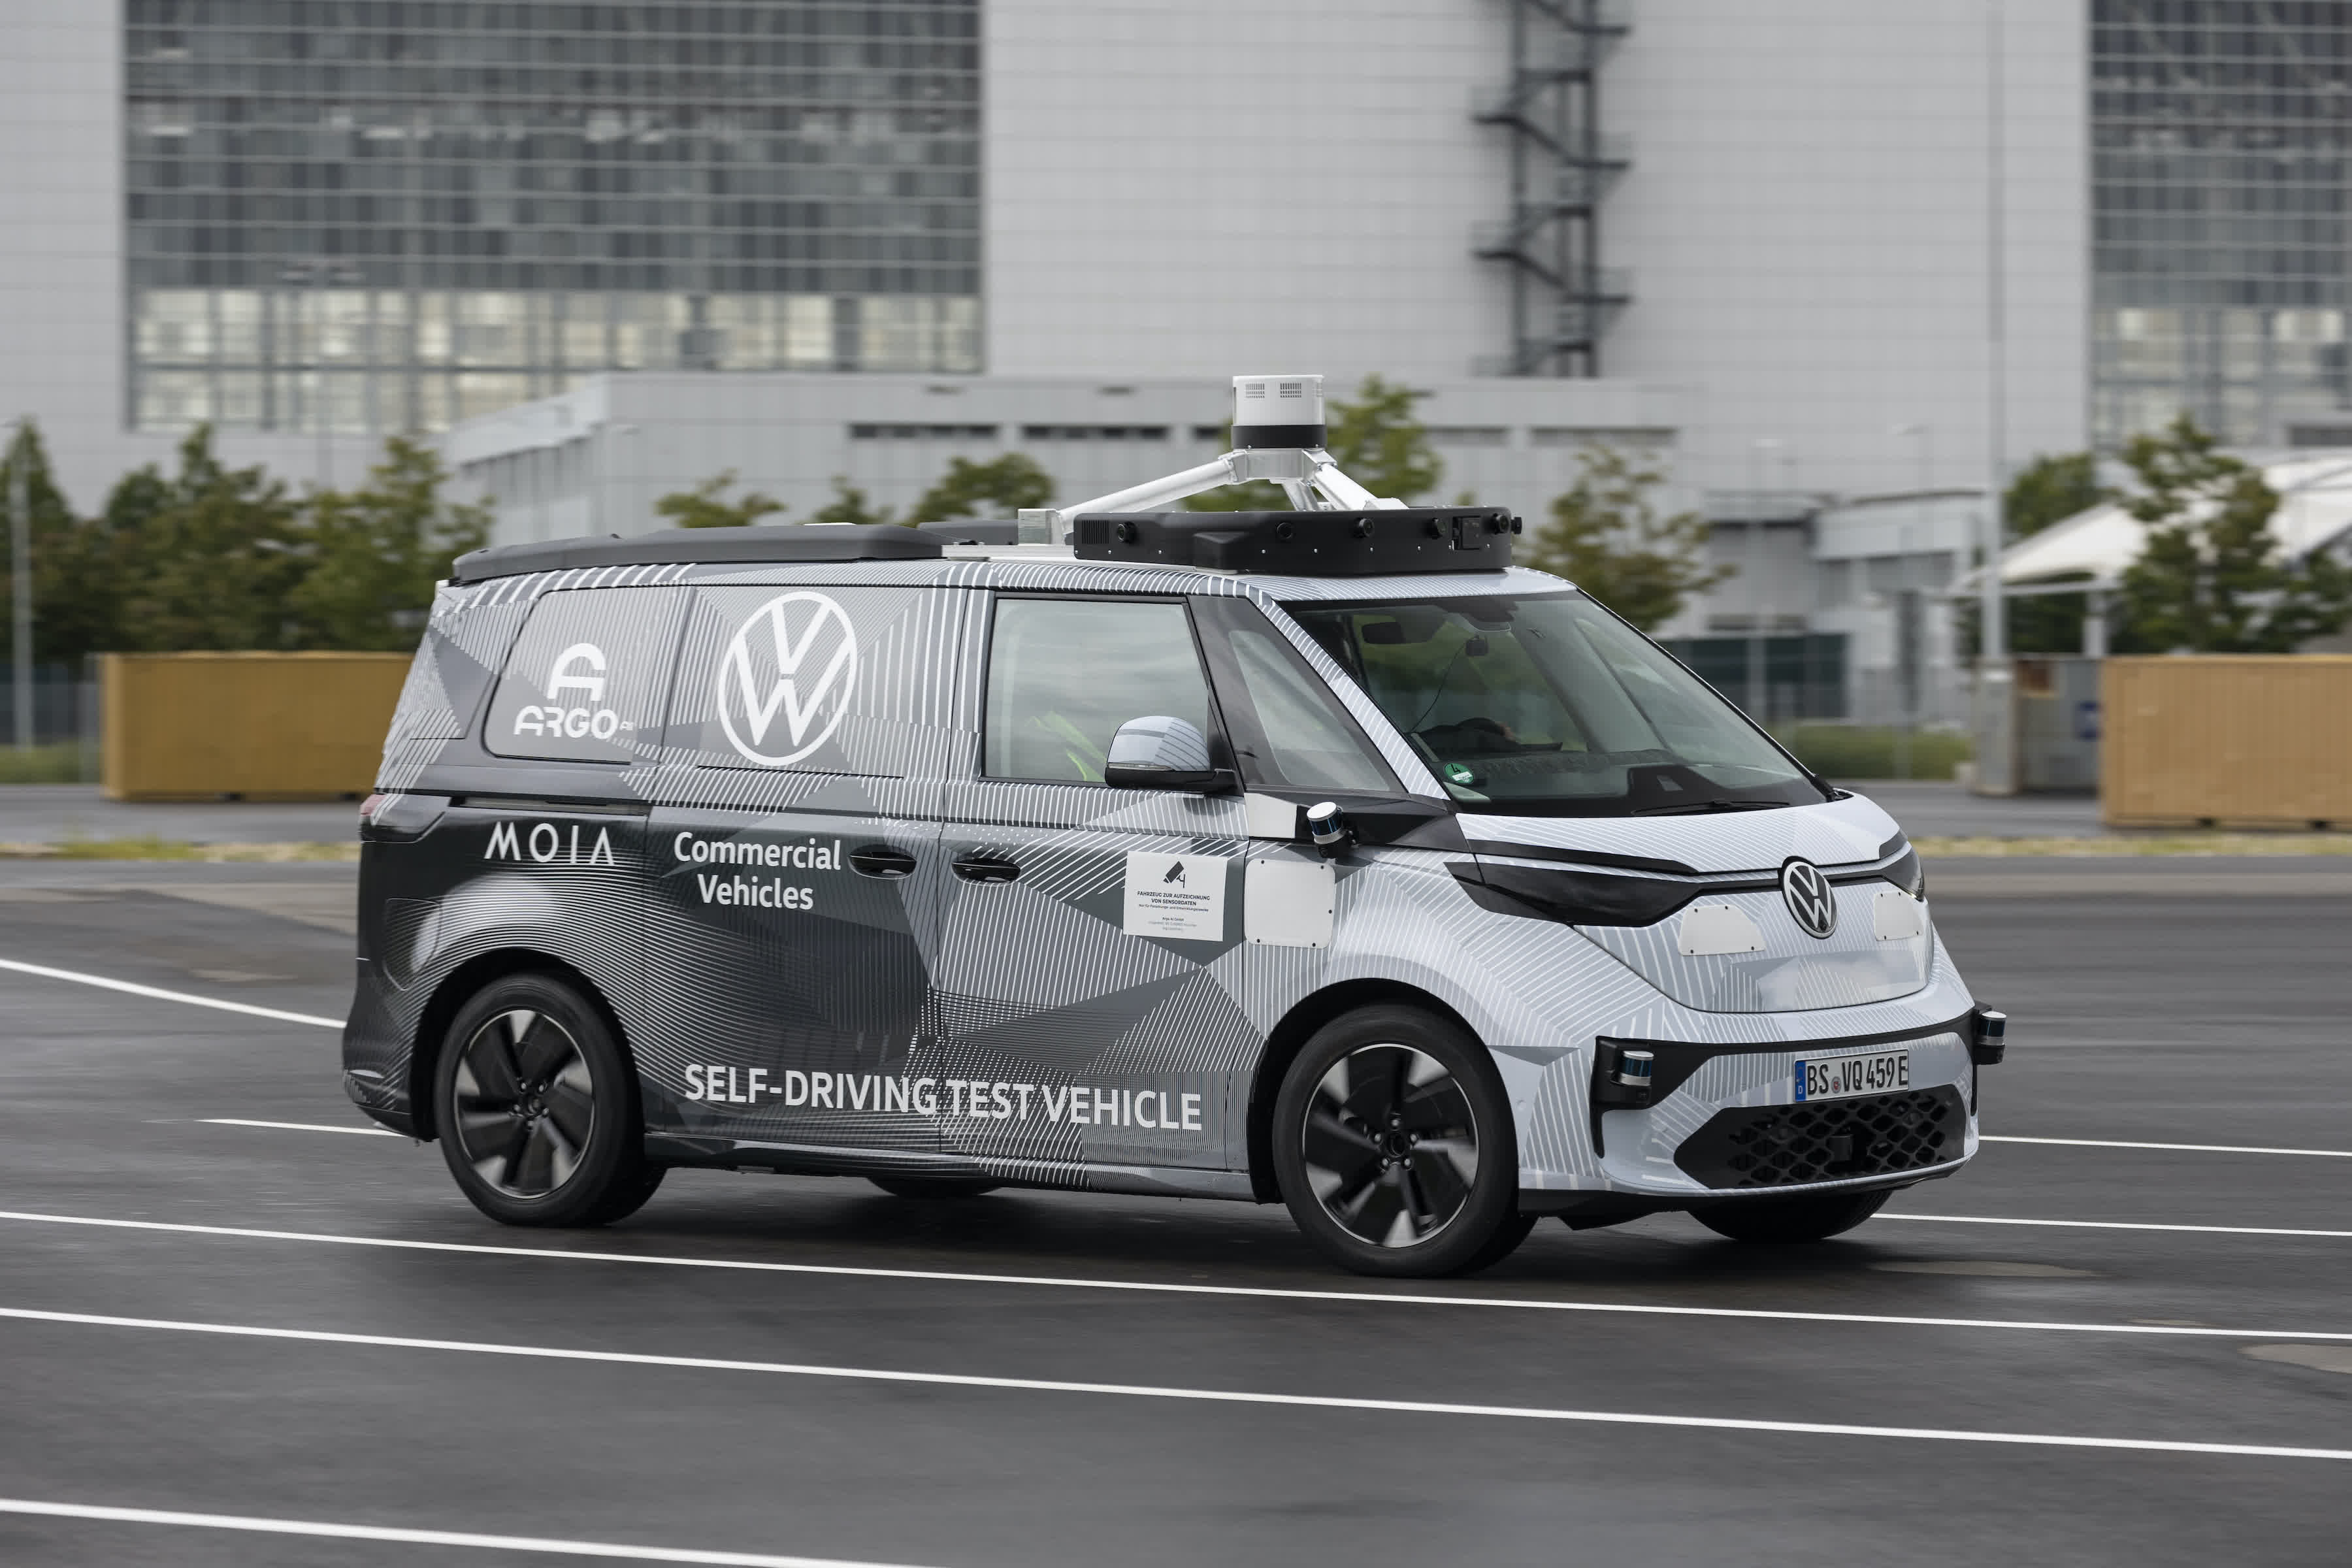 Argo AI and Volkswagen show off self-driving vehicle